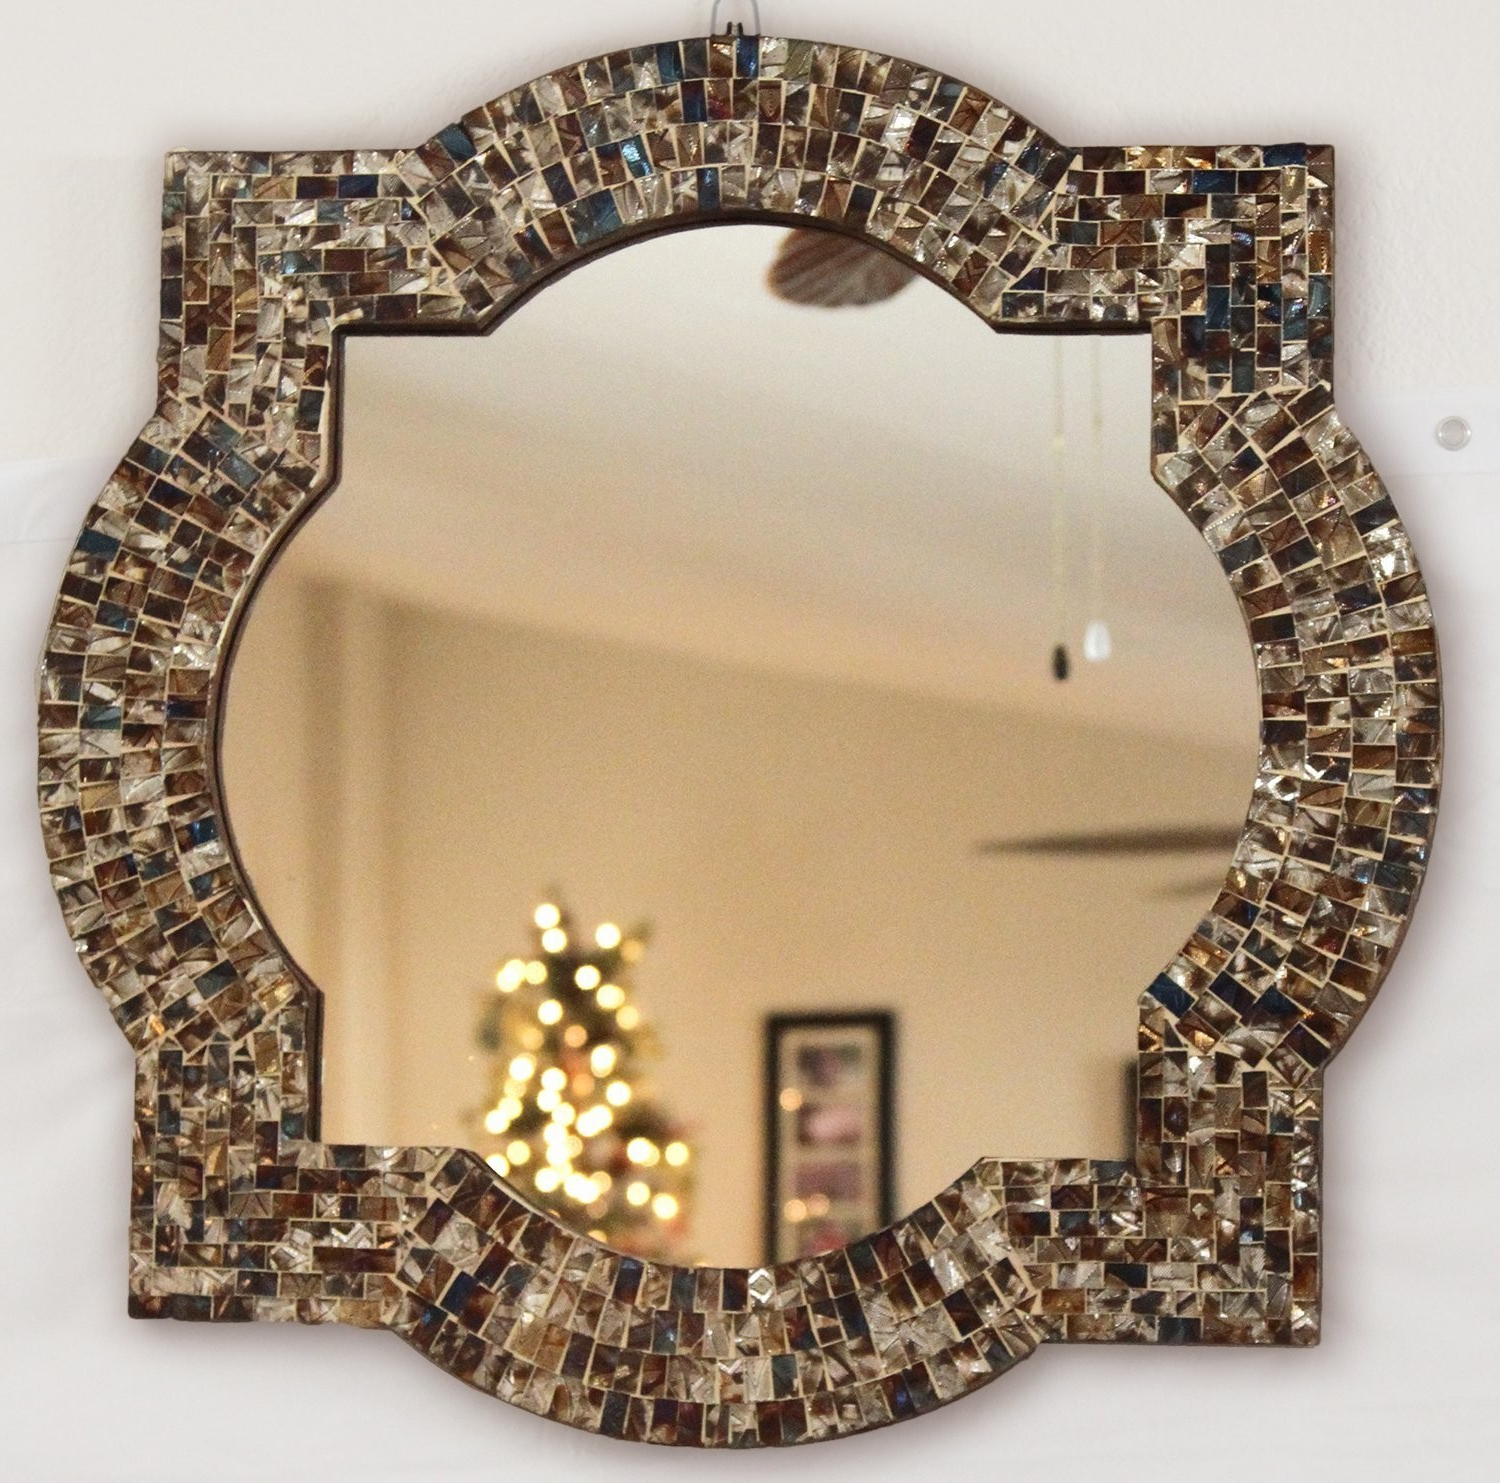 "Andalusian Quatrefoil Mirror, Lindaraja Designer Mosaic Glass Framed Wall Mirror, 24"" X 24"" Colorful Wall Mirror With Glass Mosaic Quatrefoil Frame In Favorite Mosaic Framed Wall Mirrors (View 11 of 20)"